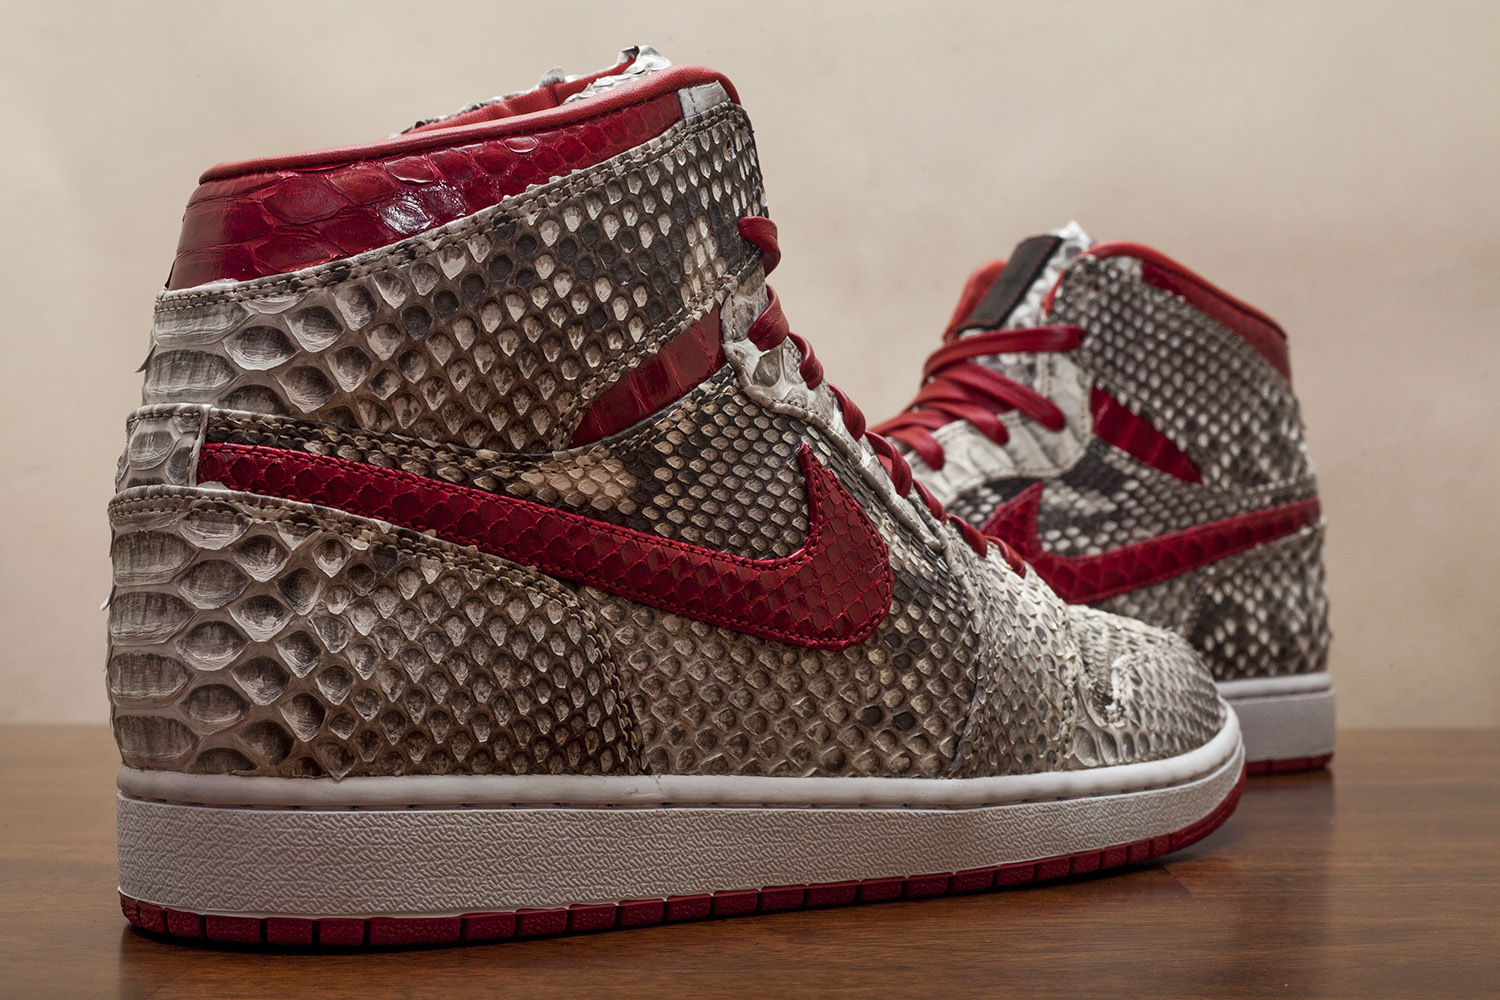 Natural_Metallic_Red_Air_Jordan_1_Custom_by_JBF3